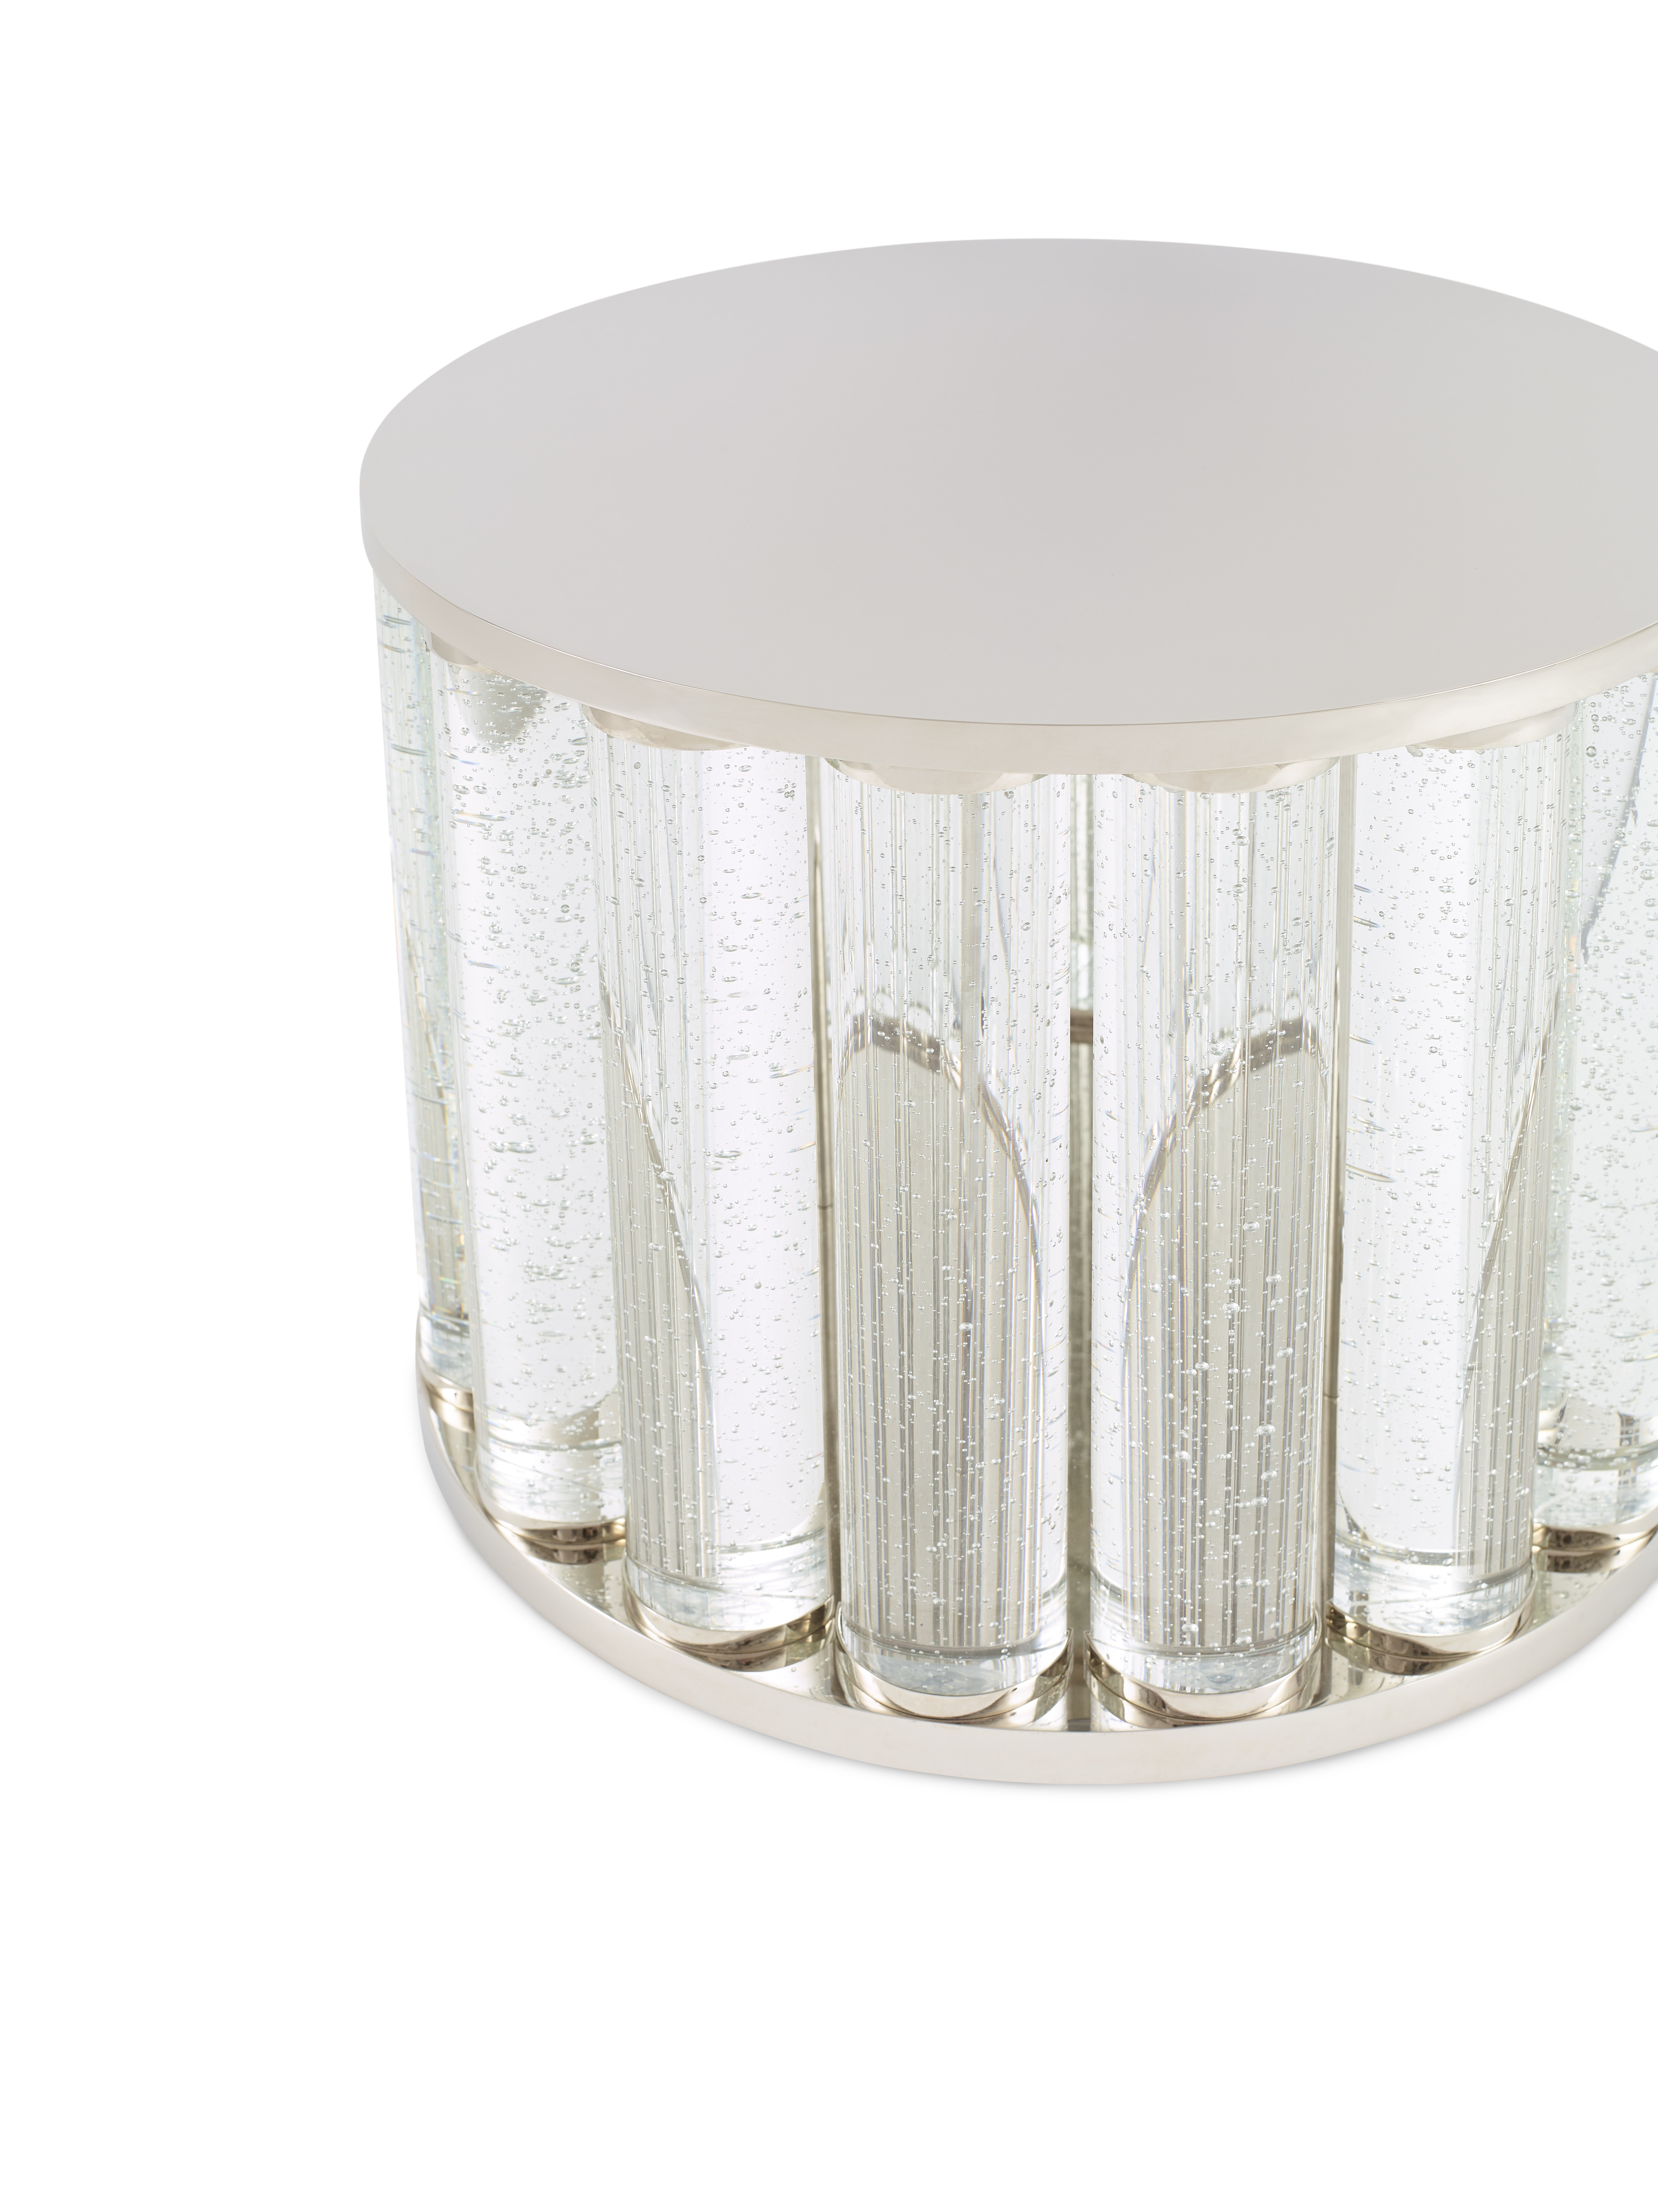 Baker_products_WNWN_menlo_cocktail_table_BAA3252_DETAIL-1